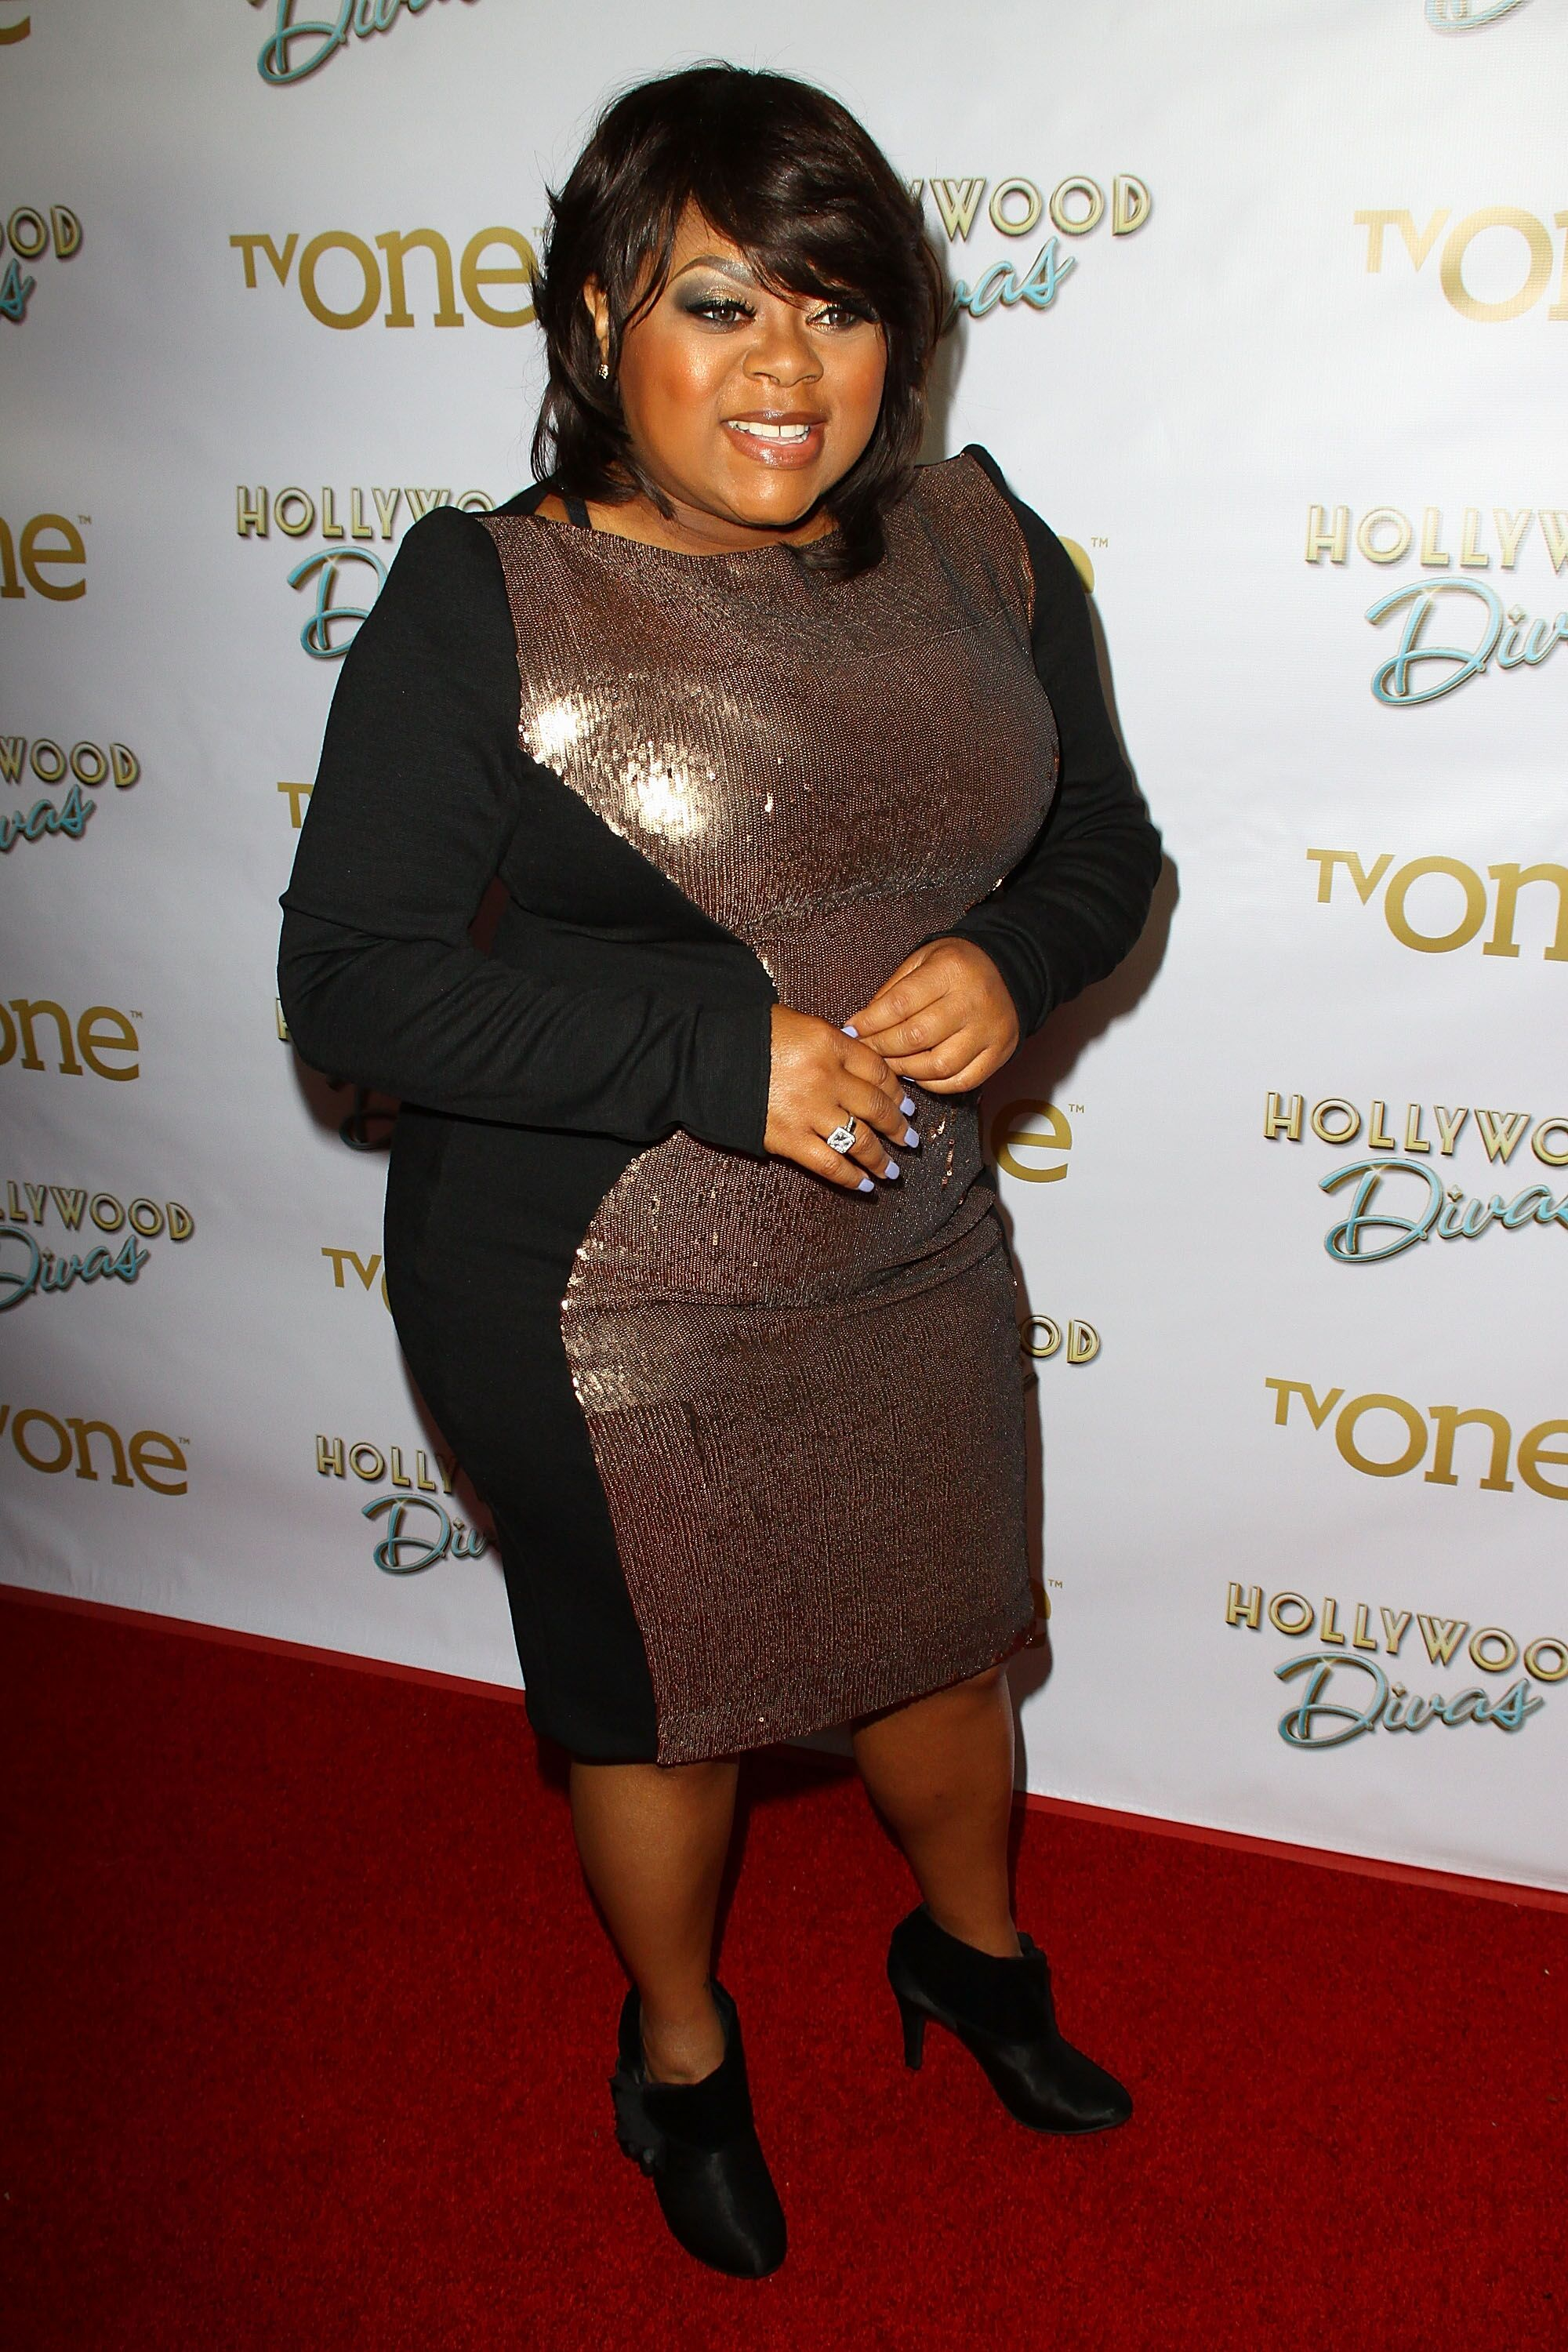 """Countess Vaughn arrives at the premiere party for TV One's """"Hollywood Divas"""" on October 7, 2014.   Photo: Getty Images"""